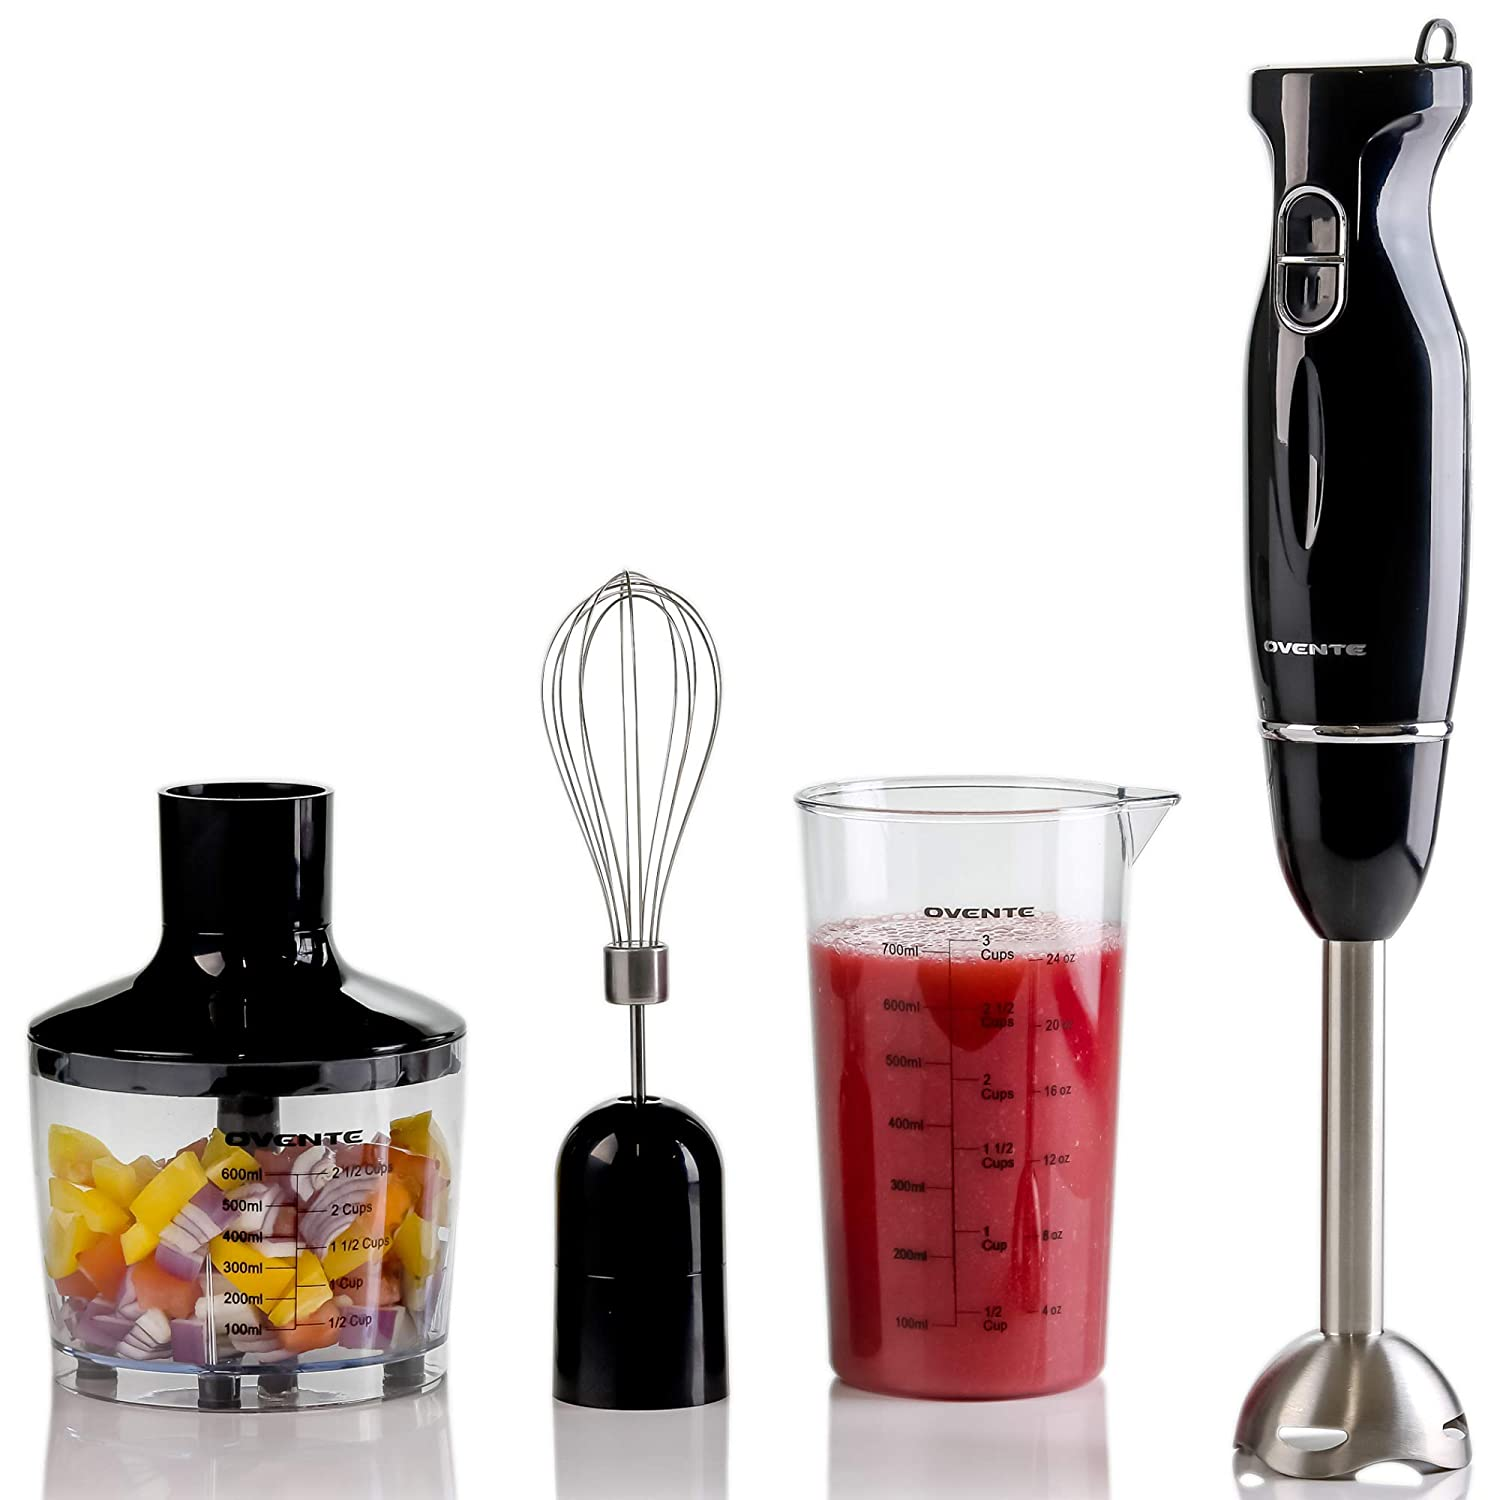 OVENTE HS565B 4-in-1 Electric Hand Immersion Blender Set 300W, Inlcudes Stainless Steel Stick Mixer, 700ml Beaker, 600ml Food Processor, Mixing Whisk, Black